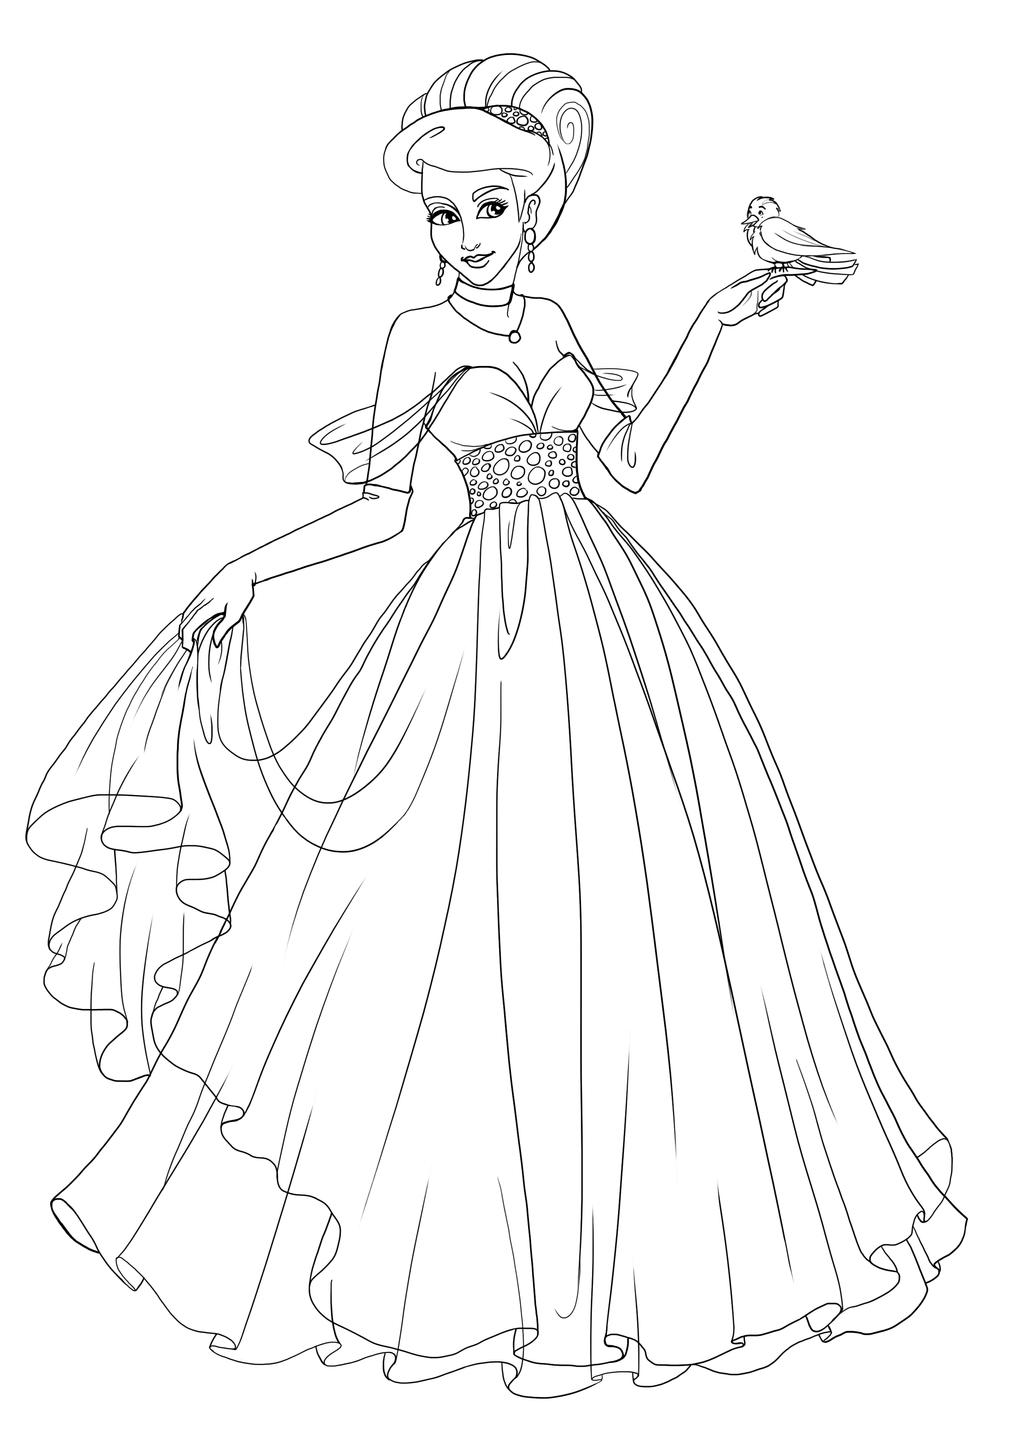 drawing of a princess commission princess saria lineart by paola tosca on princess drawing a of